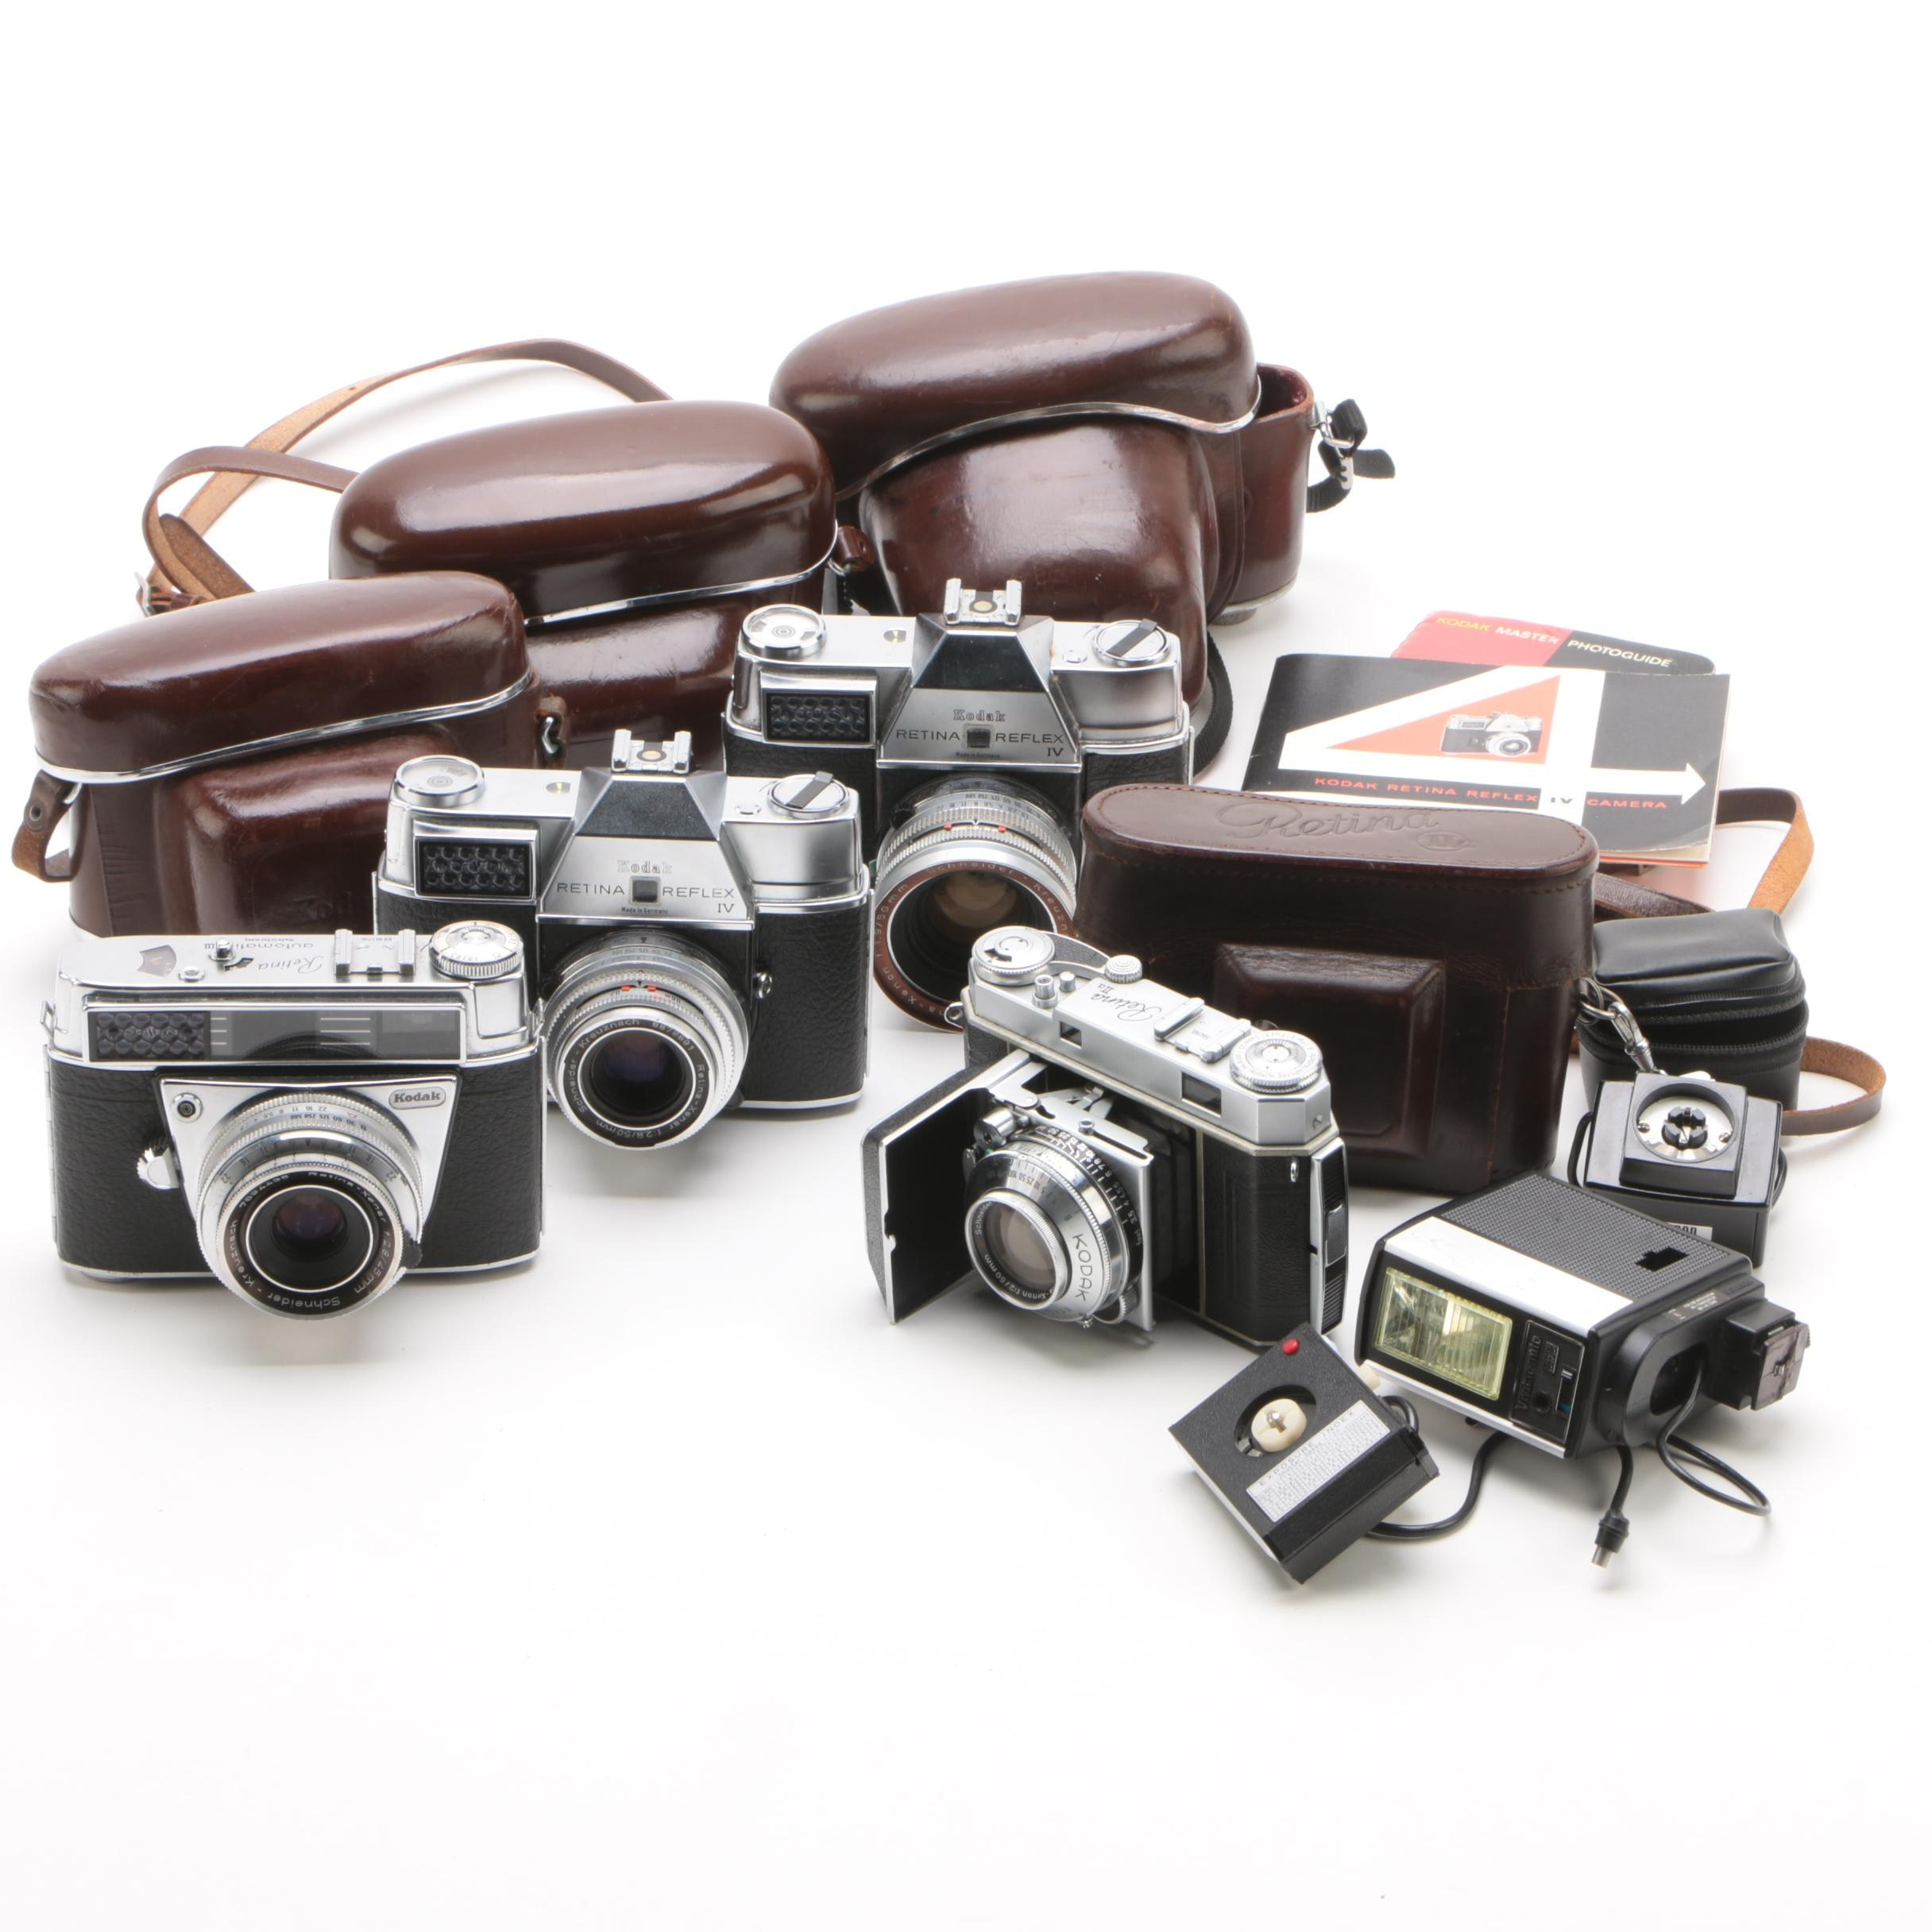 Kodak Retina 35mm Cameras with Cases and Accessories, Mid-Century